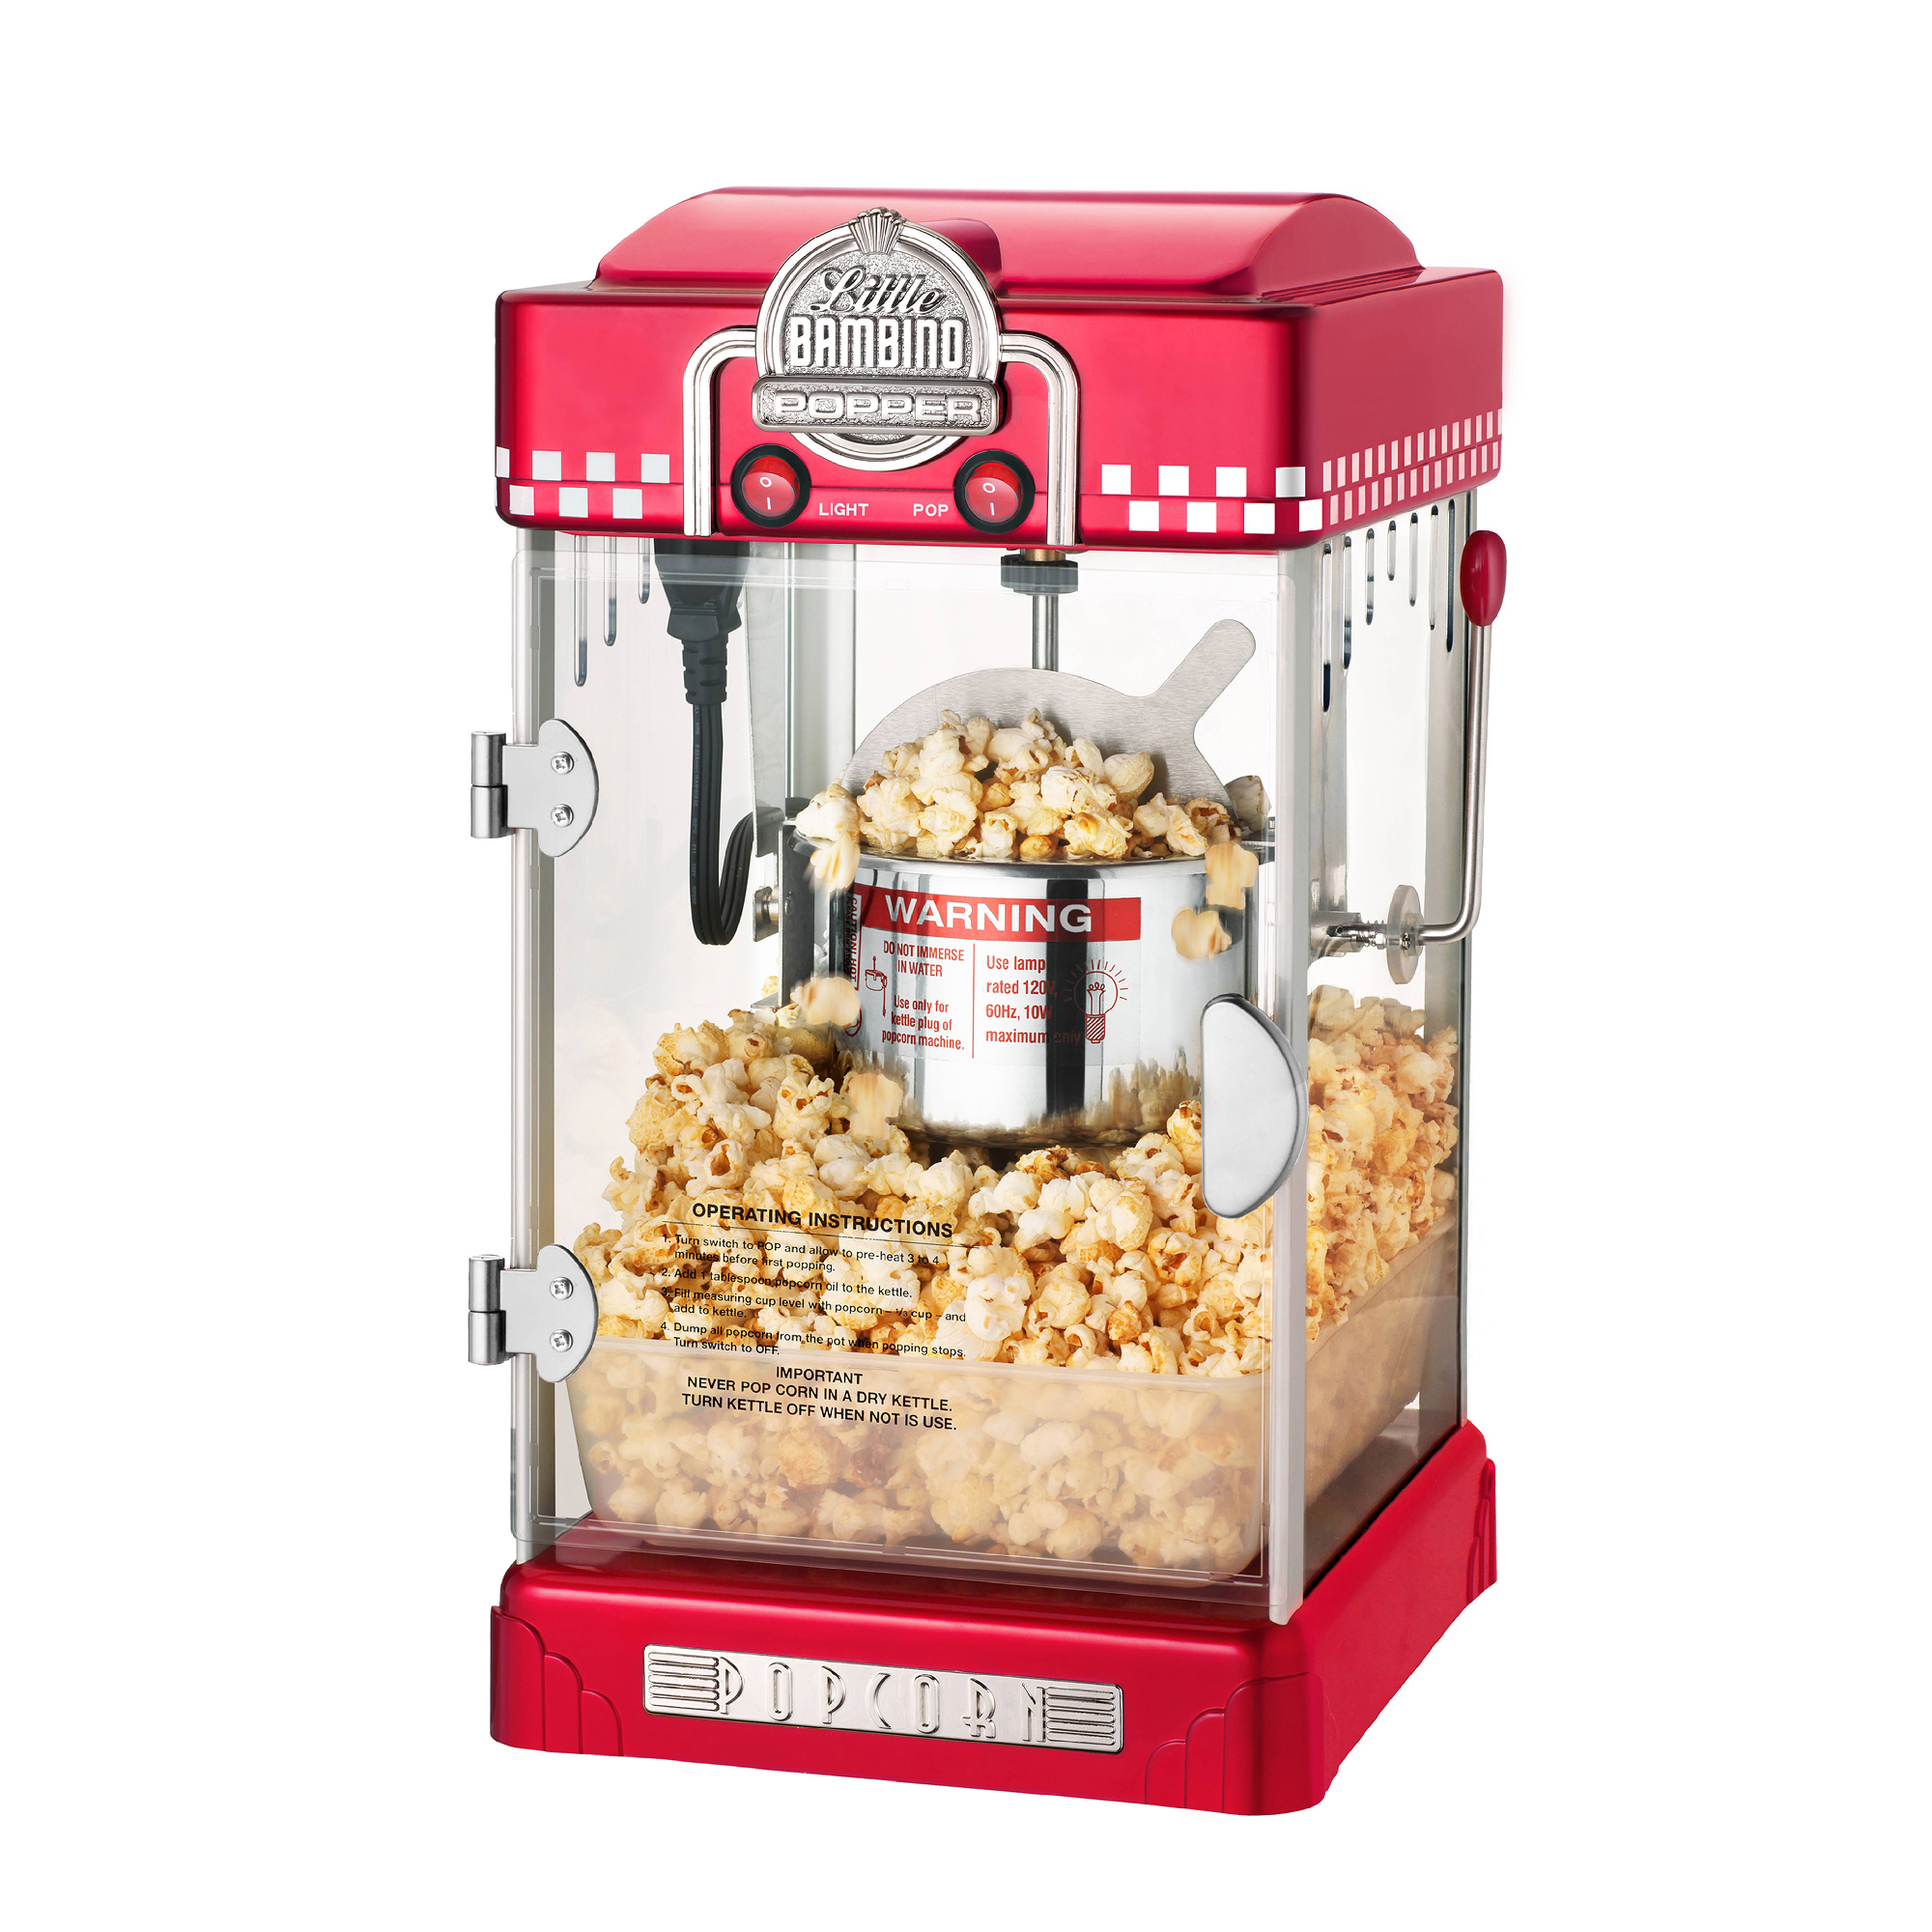 Beau Great Northern Red Little Bambino Table Top Retro Popcorn Popper, 2.5 Oz    Great Northern Popcorn